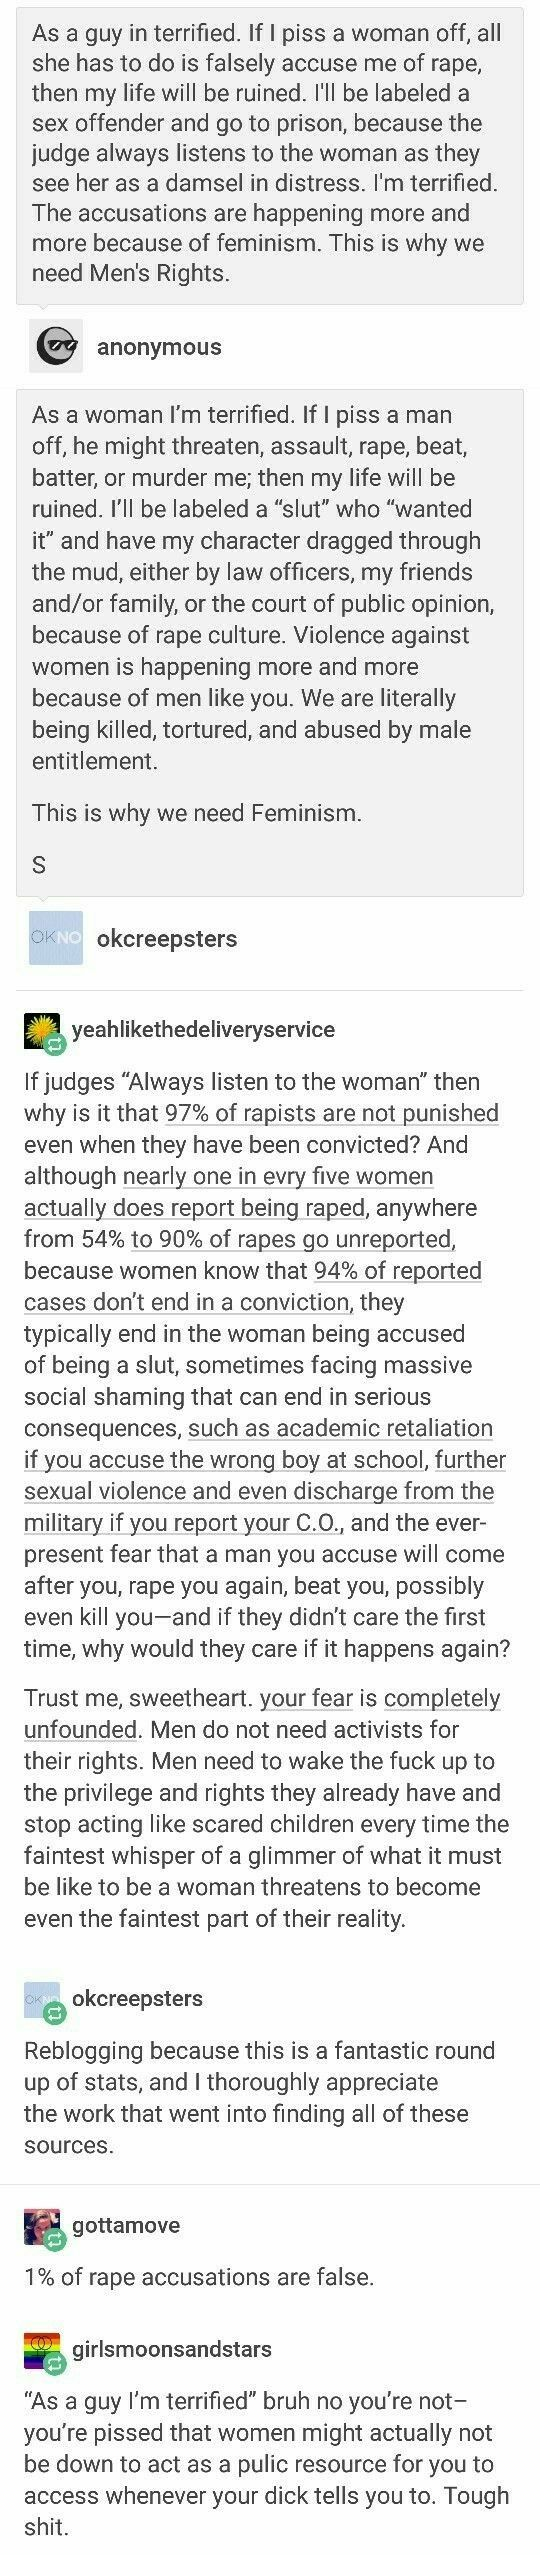 0.05 percent of rape allegations are false and in most cases it's from a  woman dropping charges on her husband cuz she 'forgives' the dirtbag.